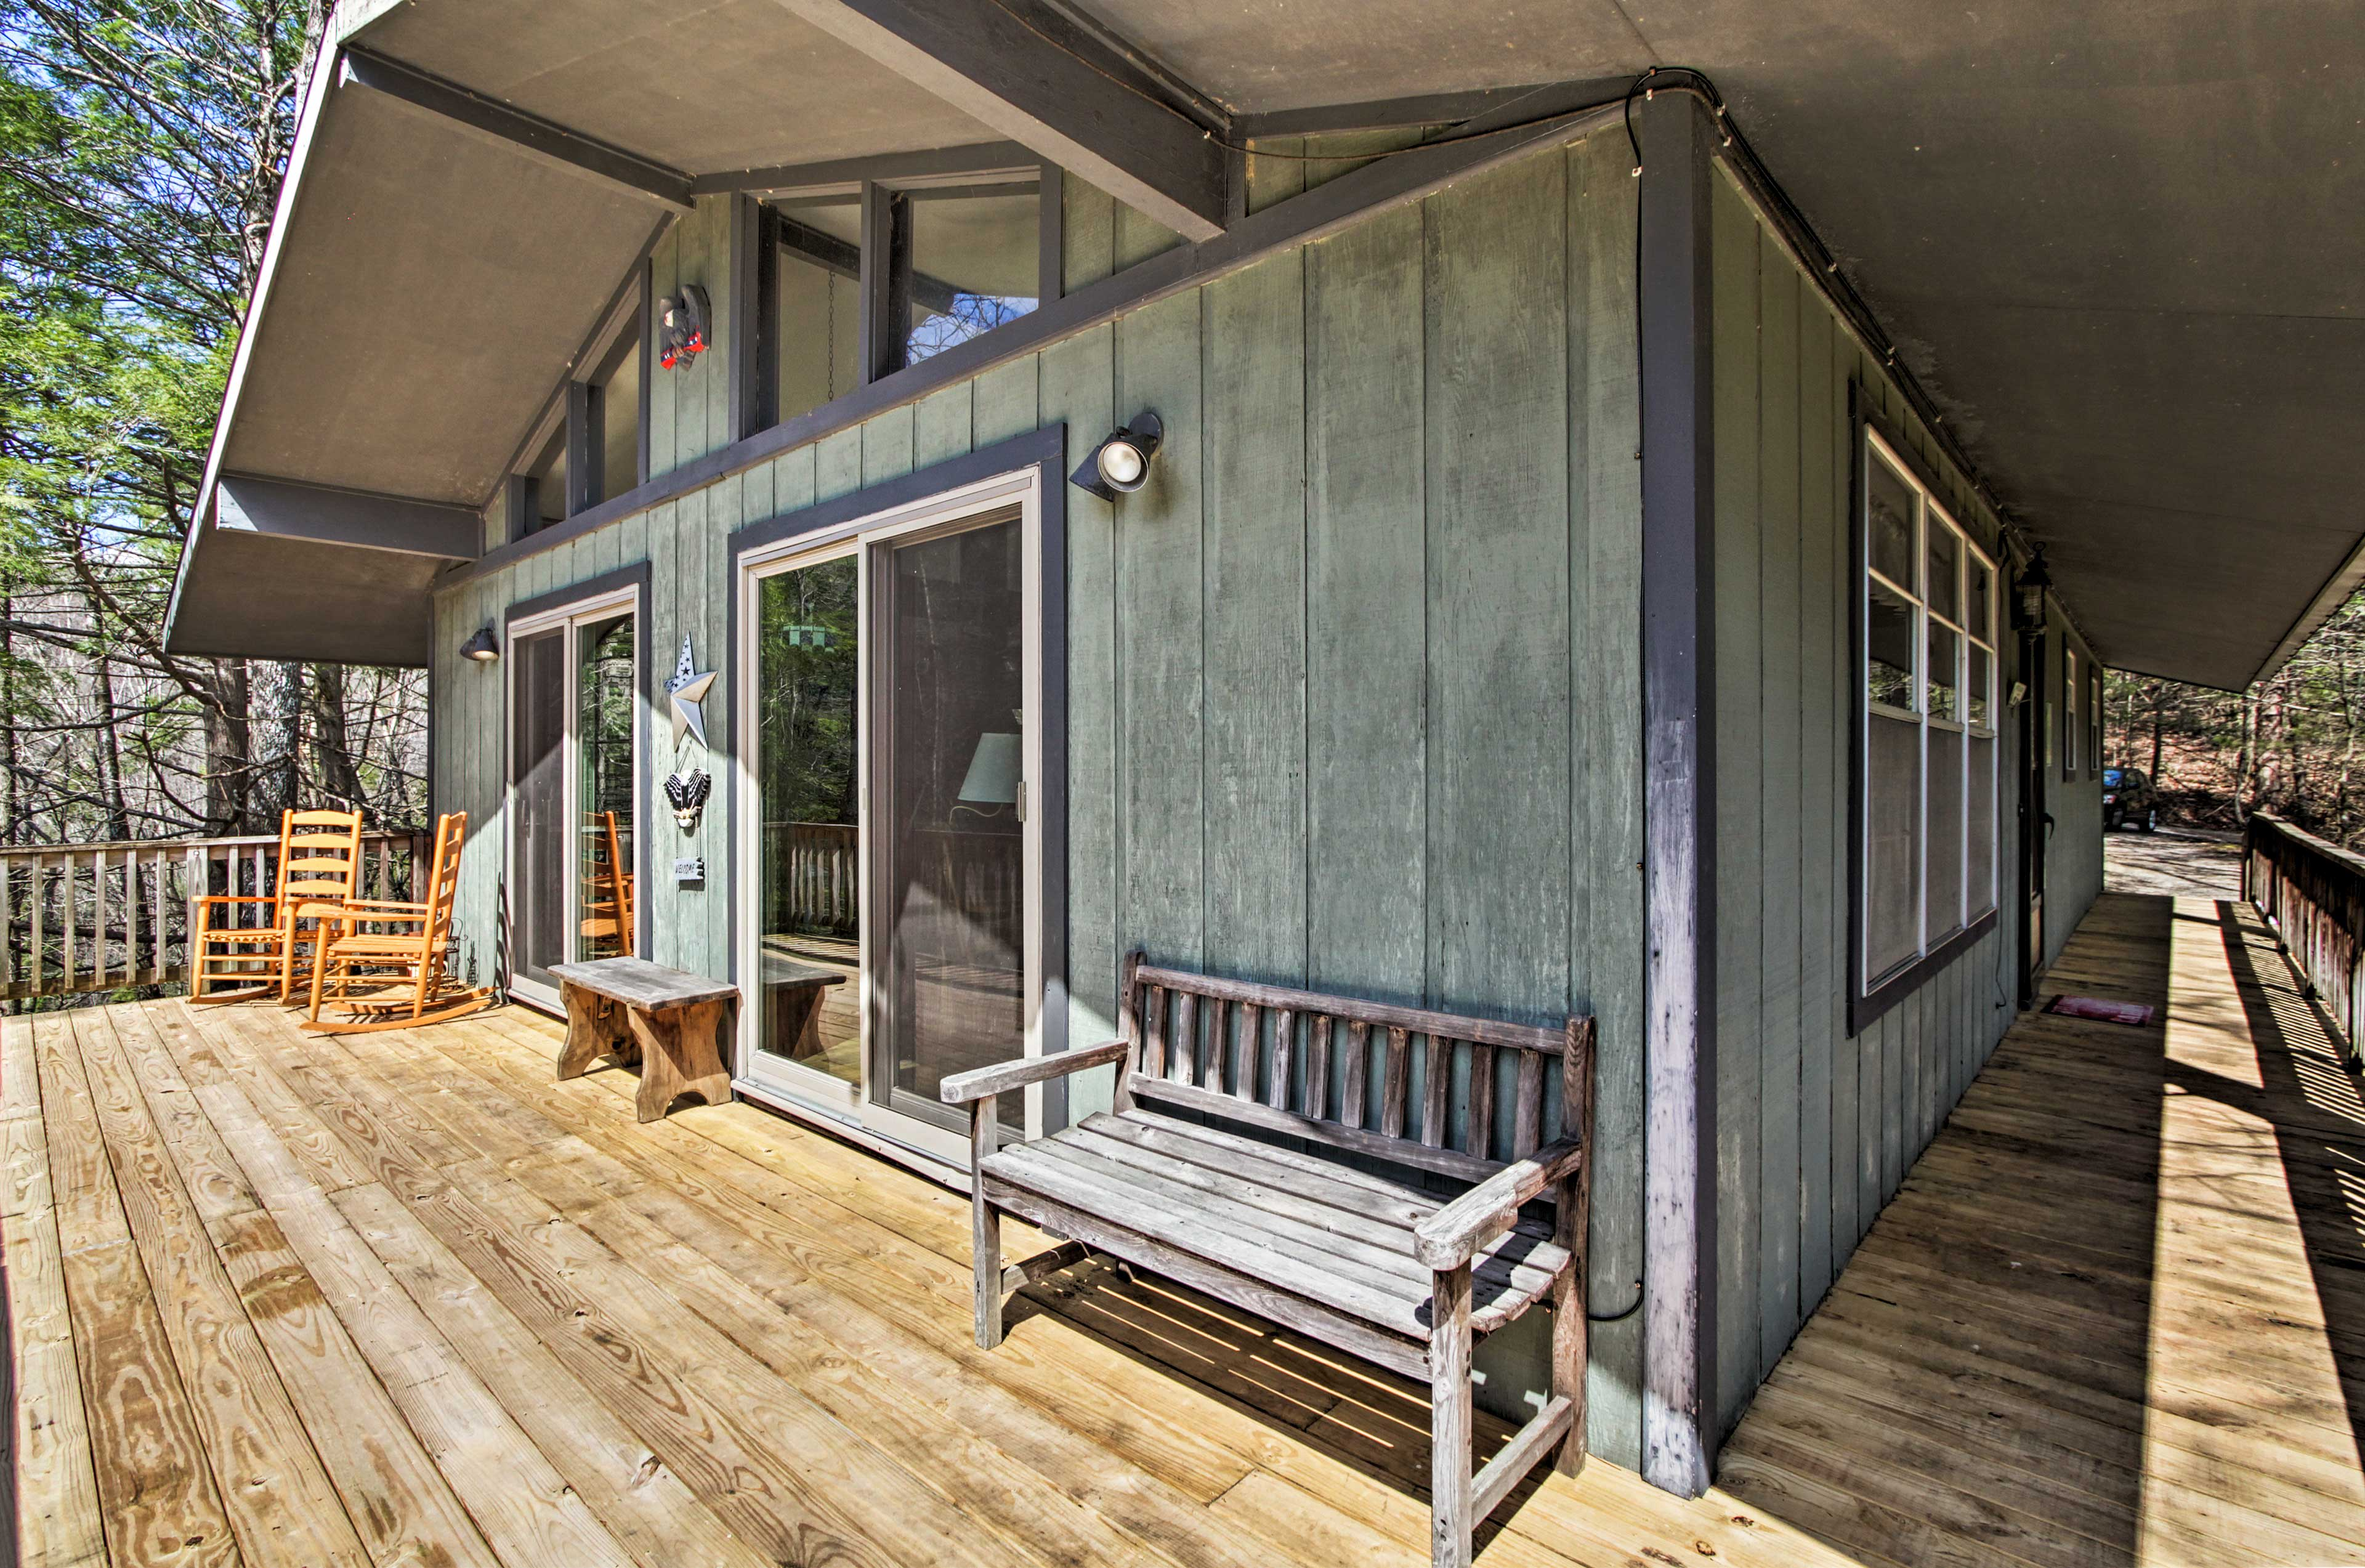 The highlight of this cabin is the wraparound mountain-view deck!